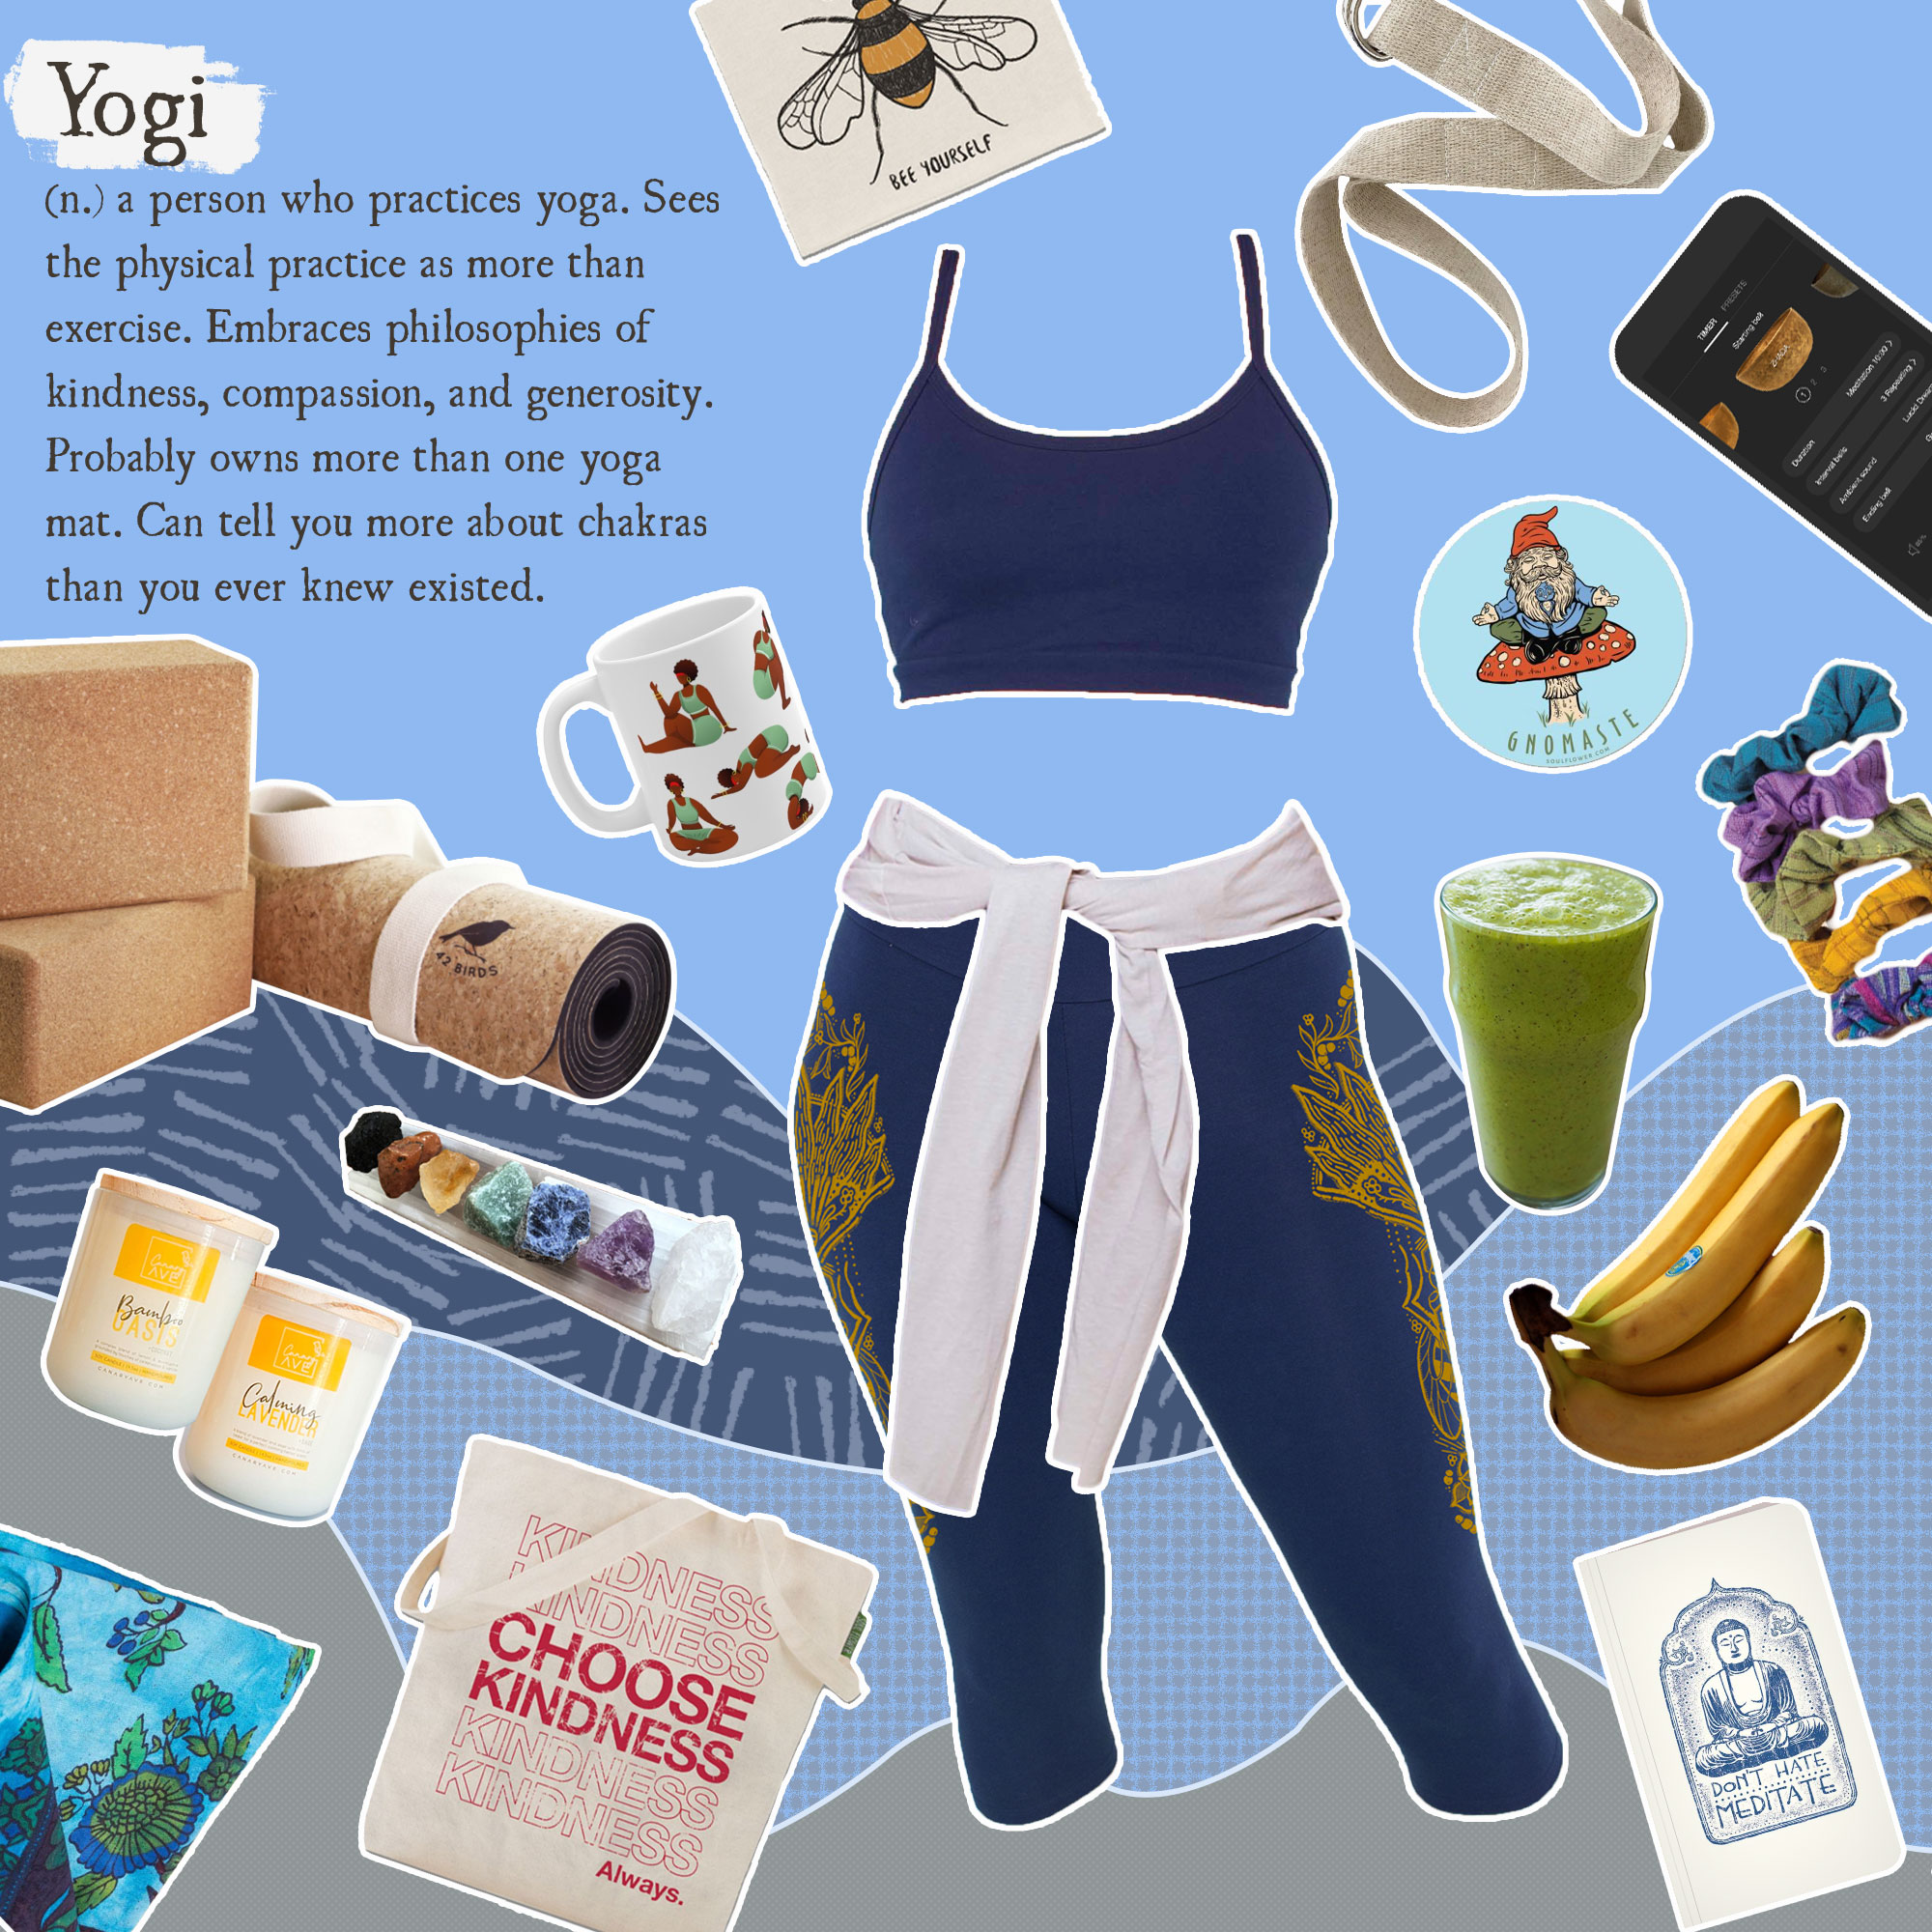 Yogi Blog - What's Your Style? Find Your Best Outfit!